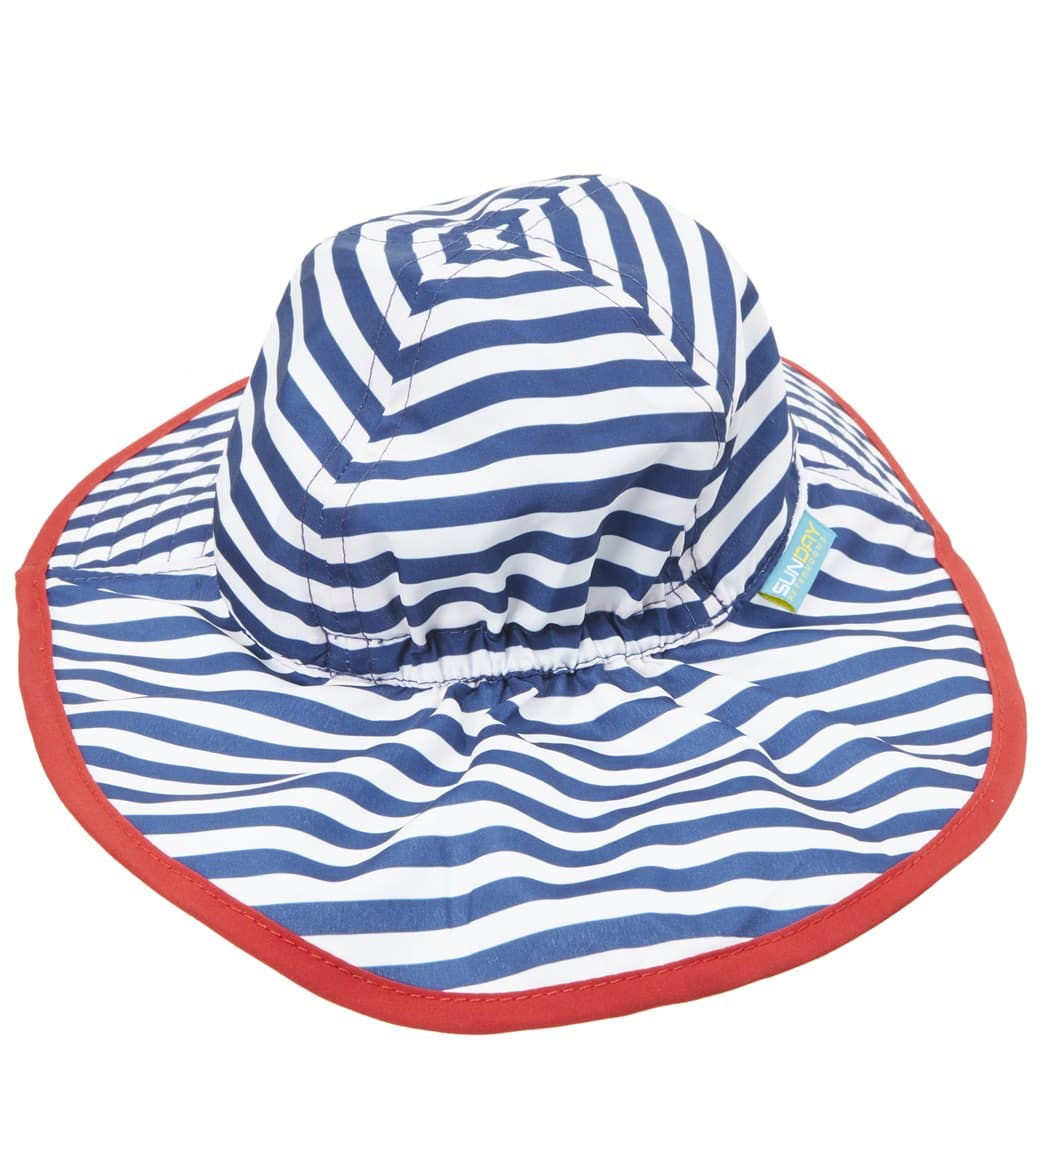 0e4bce02b03a6 Sunday Afternoons Infant SunSprout Hat at SwimOutlet.com